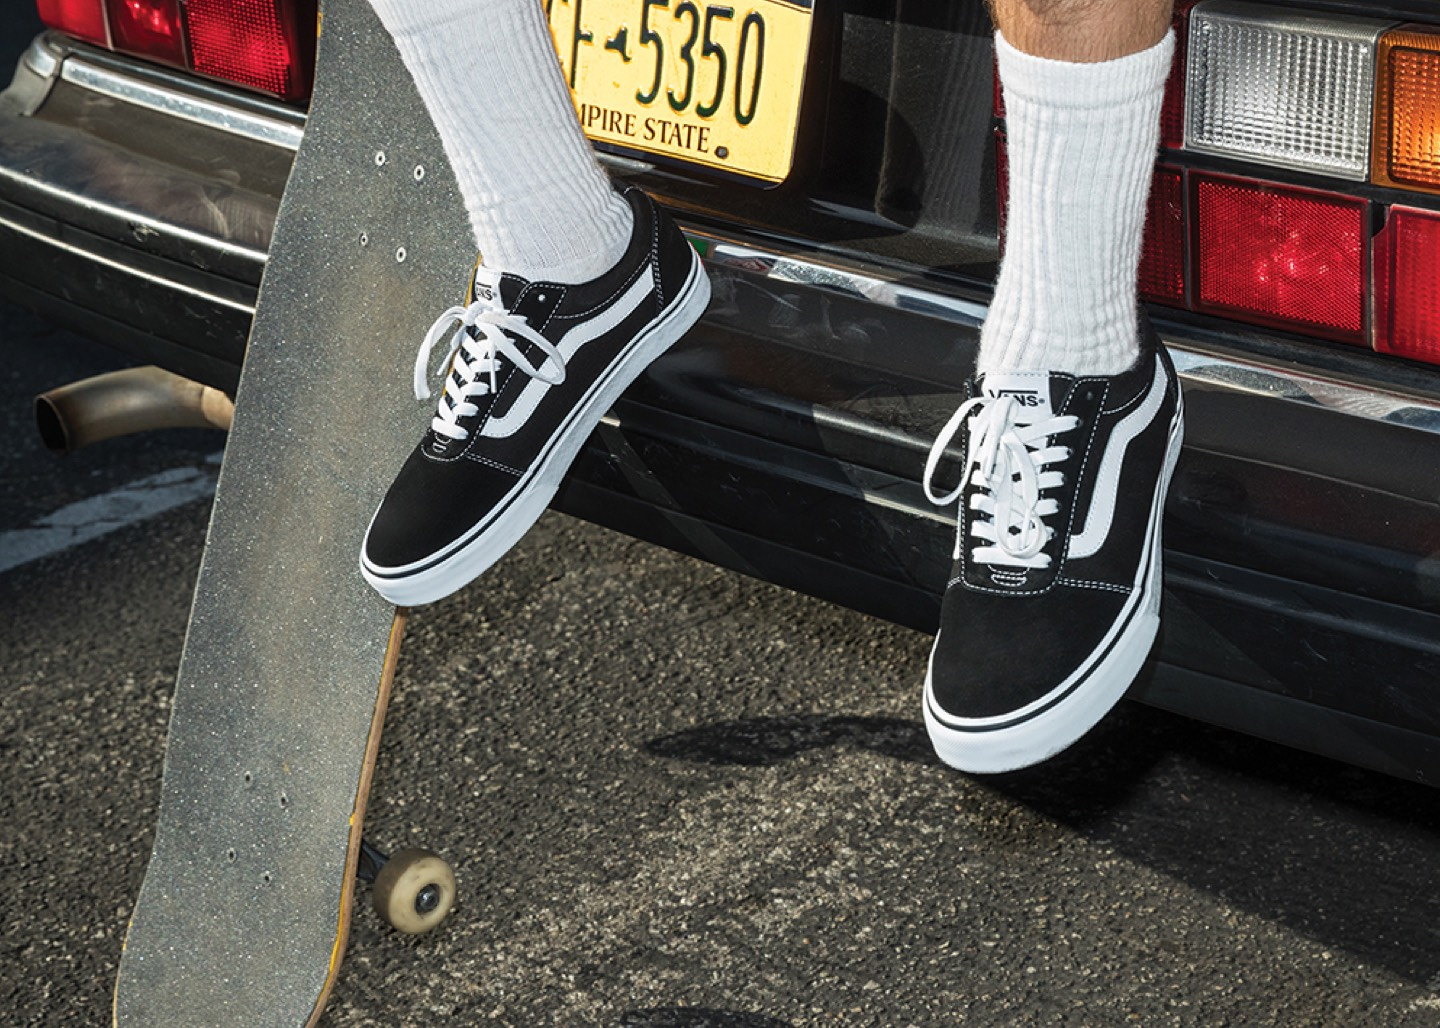 Vans Old Skool Shoes, DUBAI, ABU DHABI, UAE